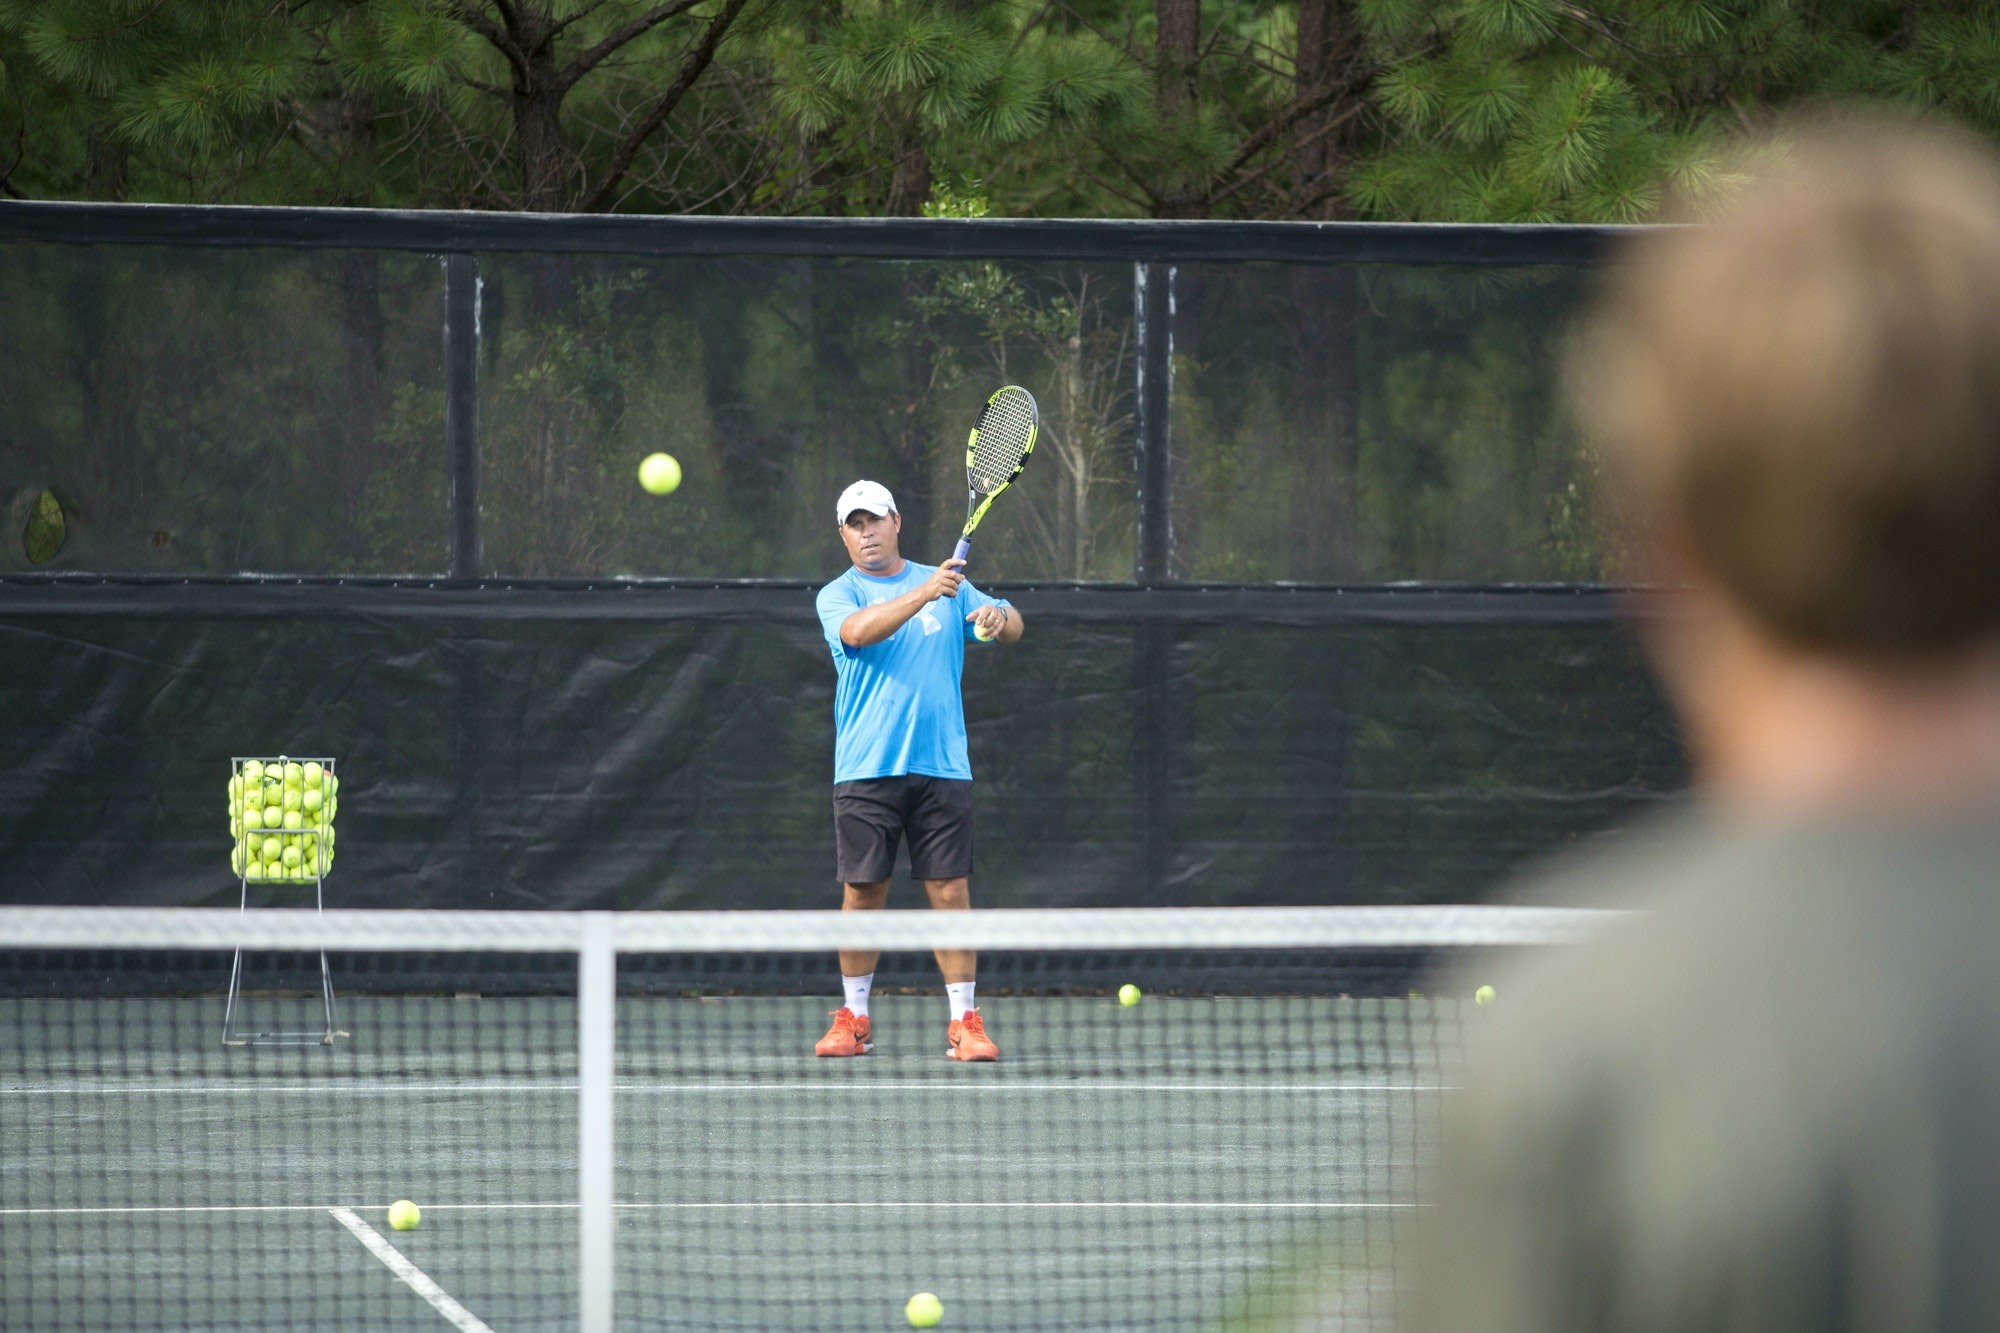 Francois B. teaches tennis lessons in Auburn, AL